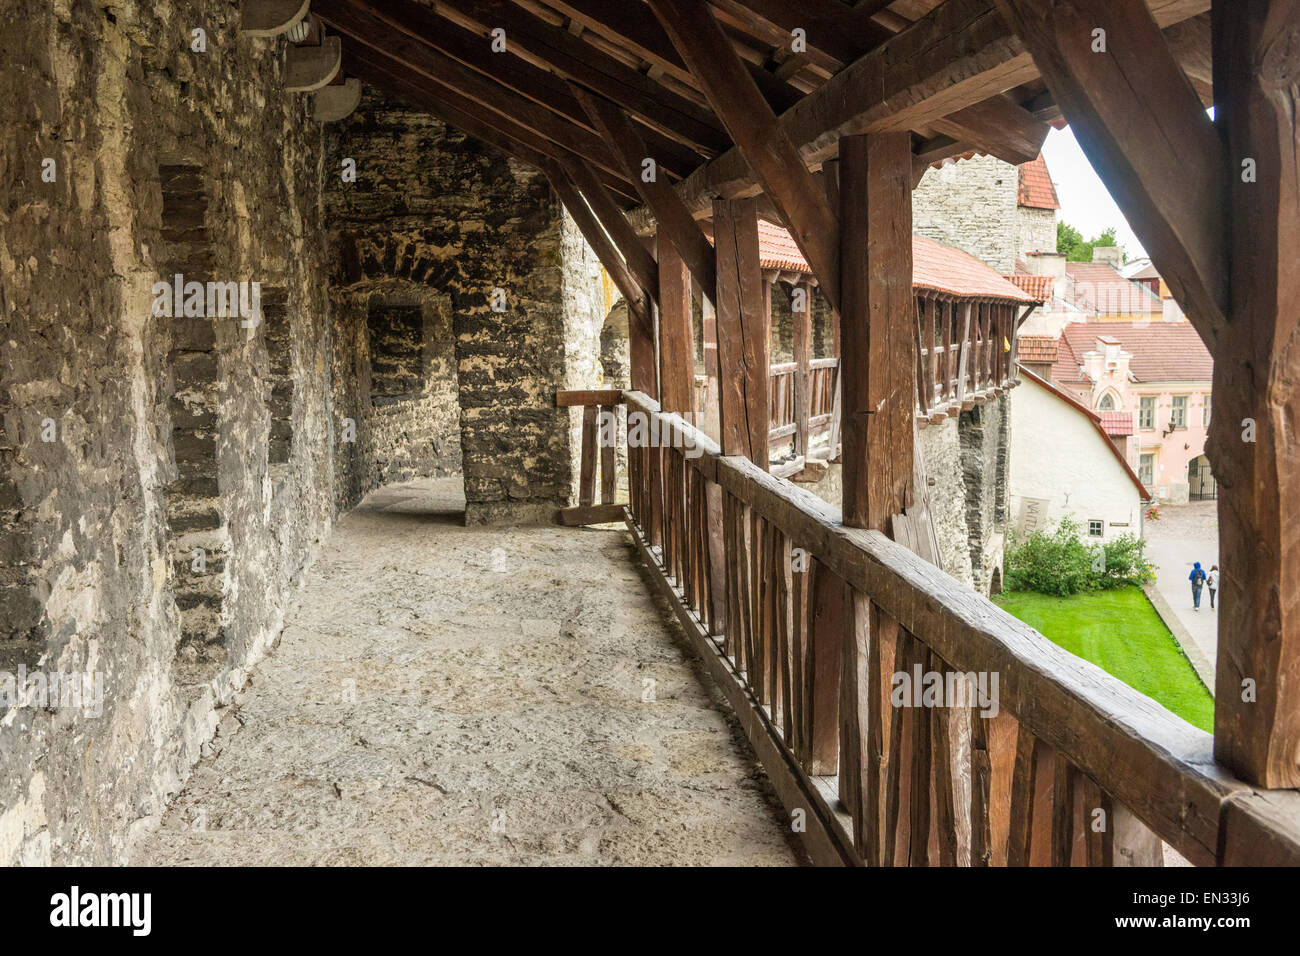 Walkway on town wall near the Monastery Gate, old town of Tallinn, Estonia. - Stock Image